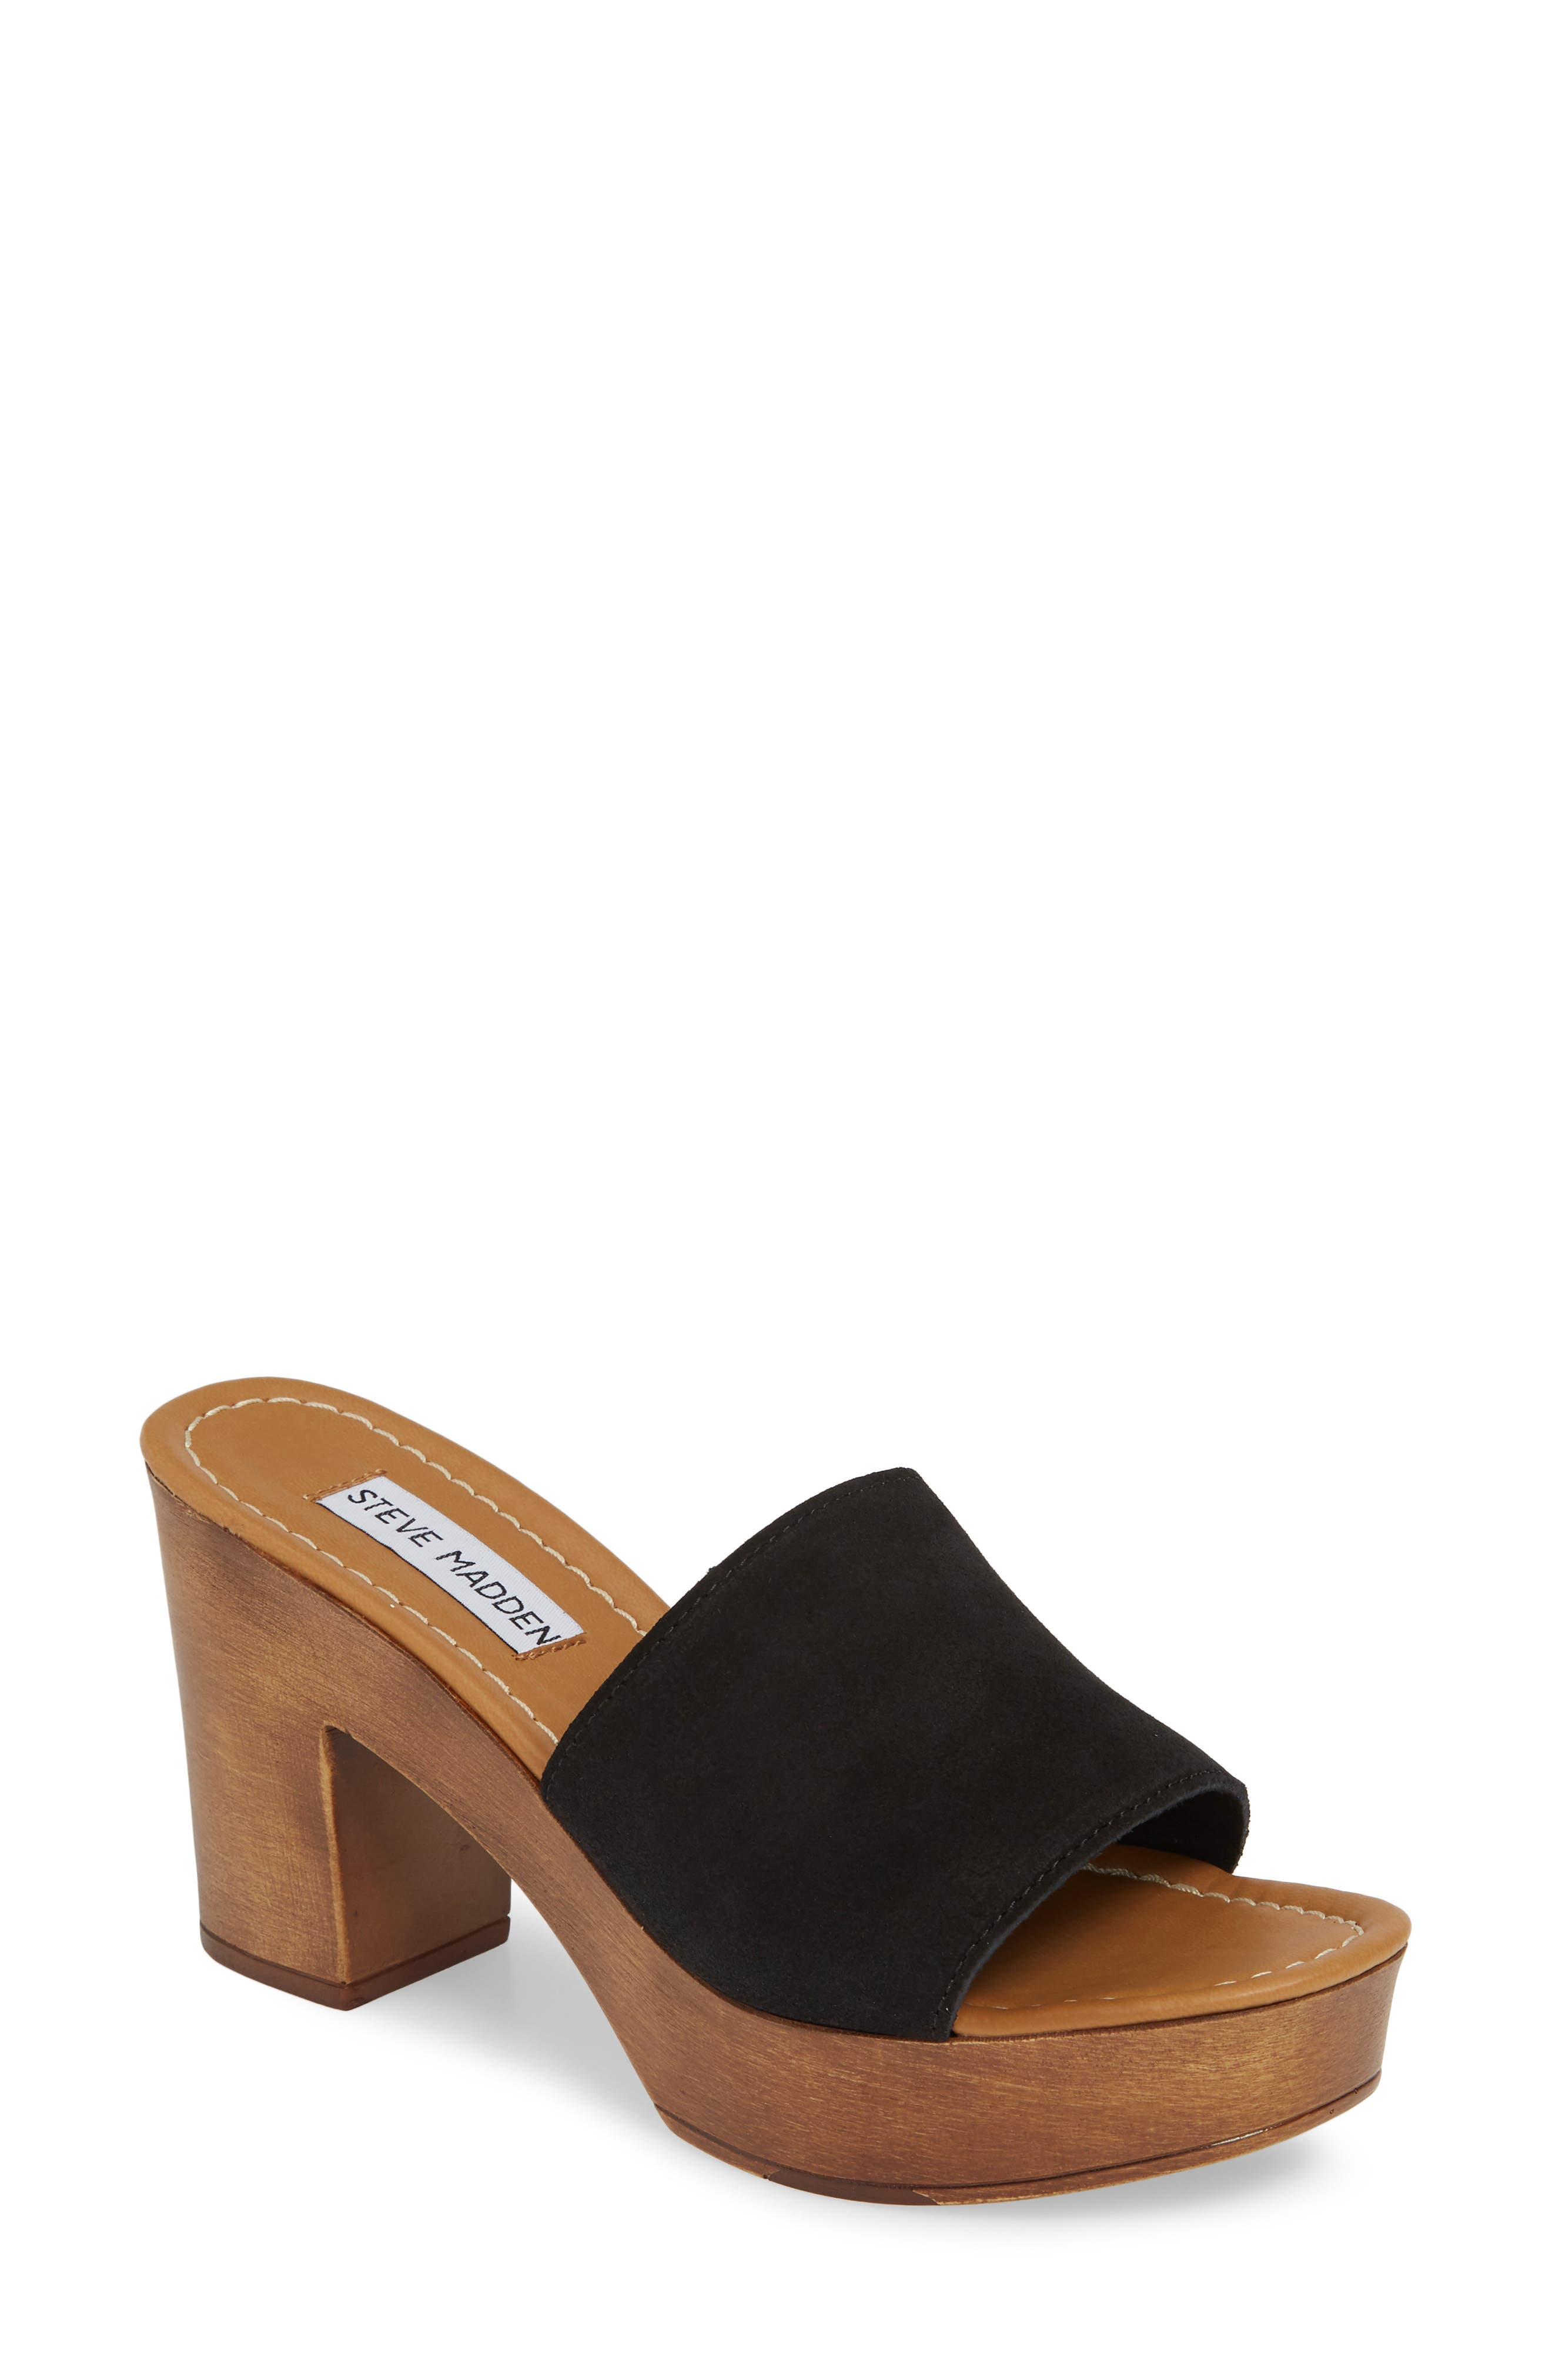 Fran Platform Slide Sandal, Main, color, BLACK SUEDE